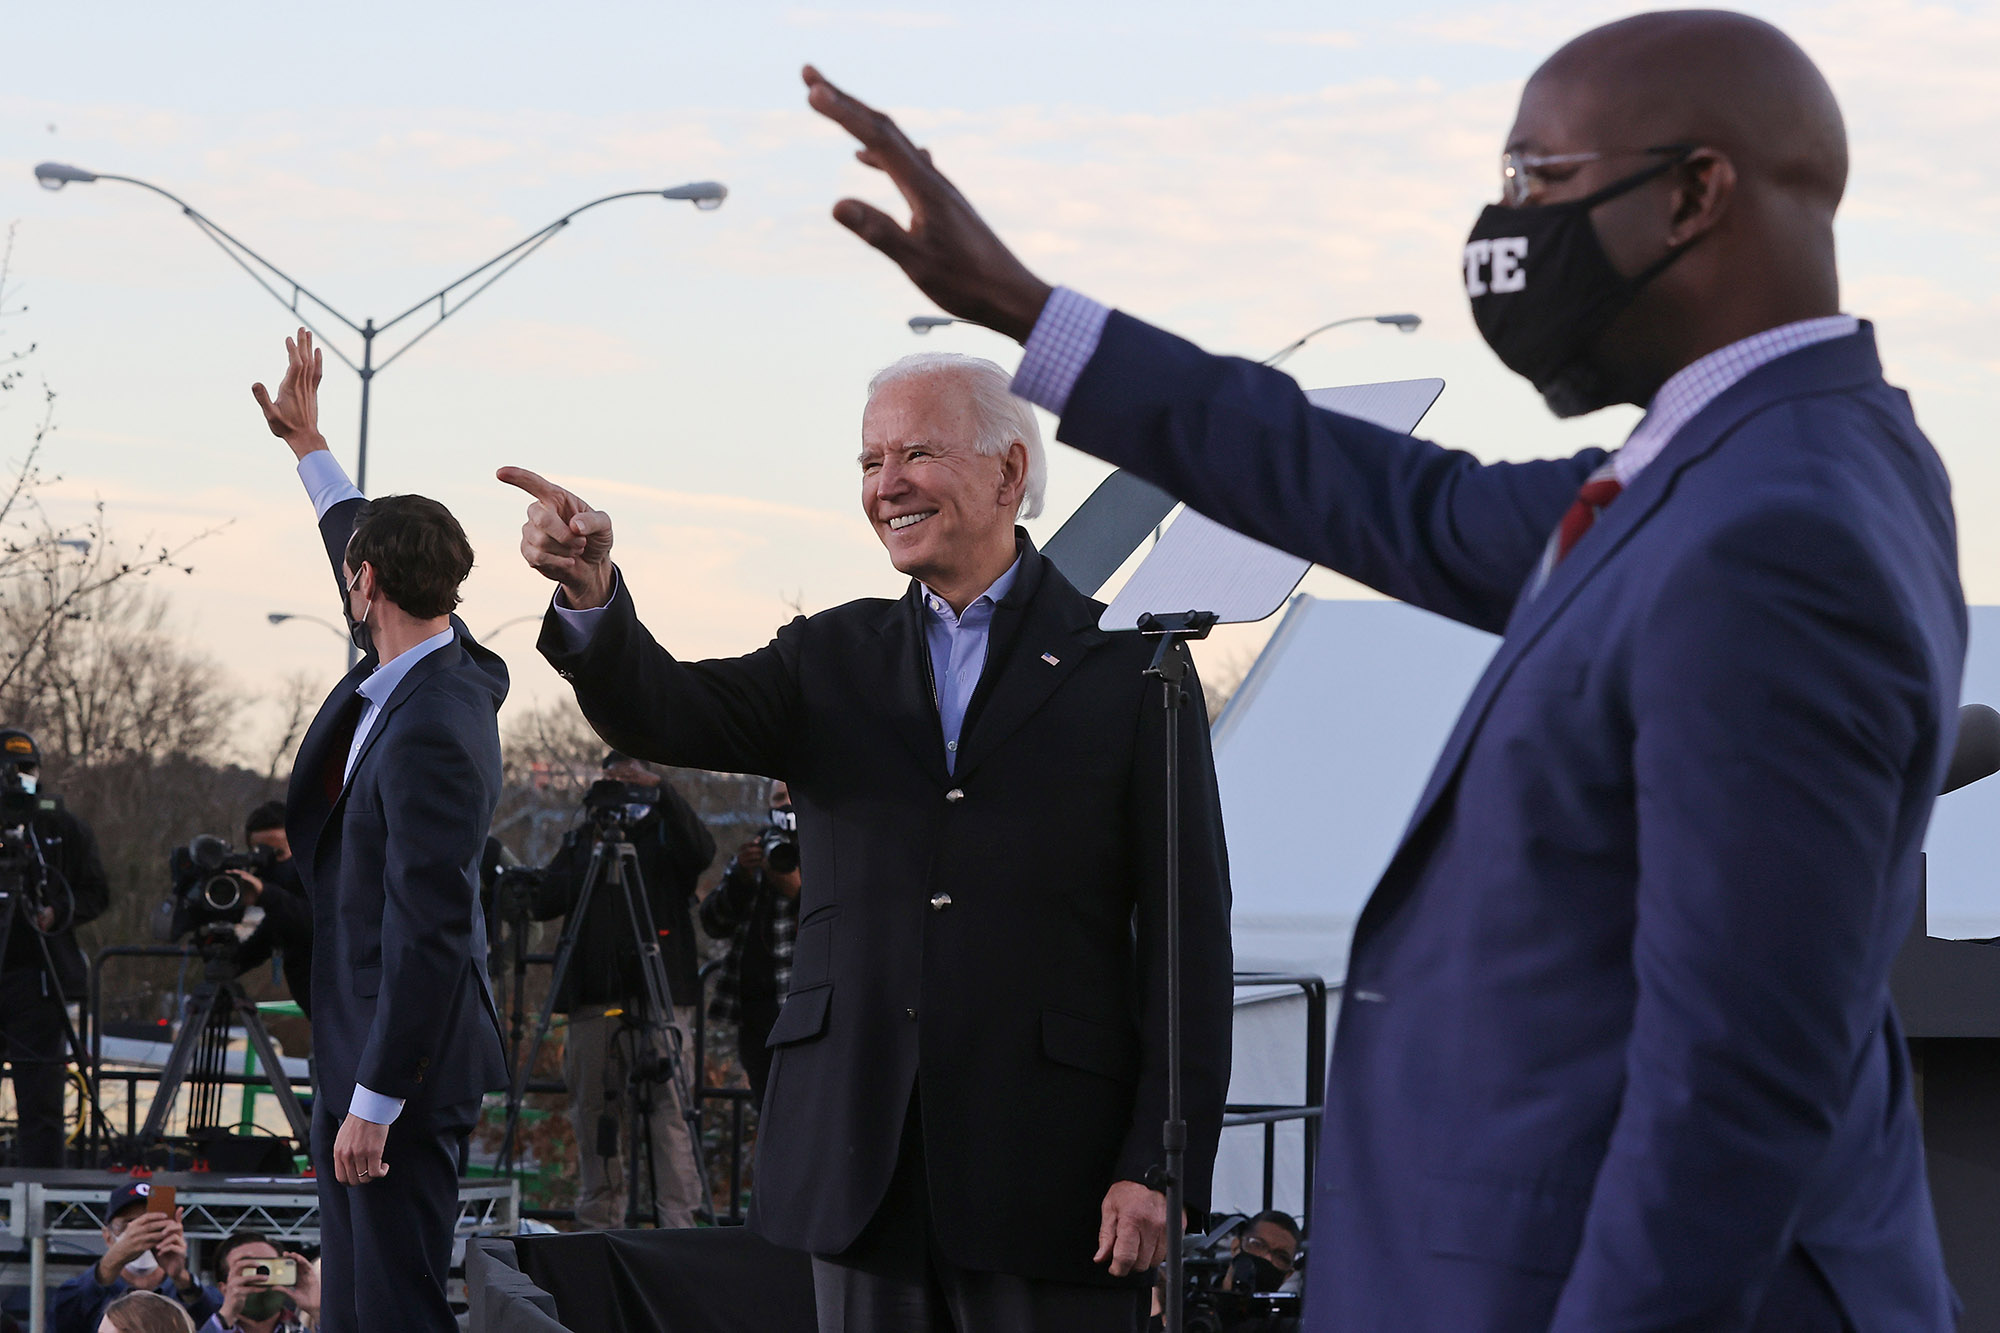 President-elect Joe Biden rallies with Democratic candidates for the U.S. Senate Jon Ossoff and Rev. Raphael Warnock the day before their runoff election in the parking lot of Center Parc Stadium, on January 4, in Atlanta, Georgia.